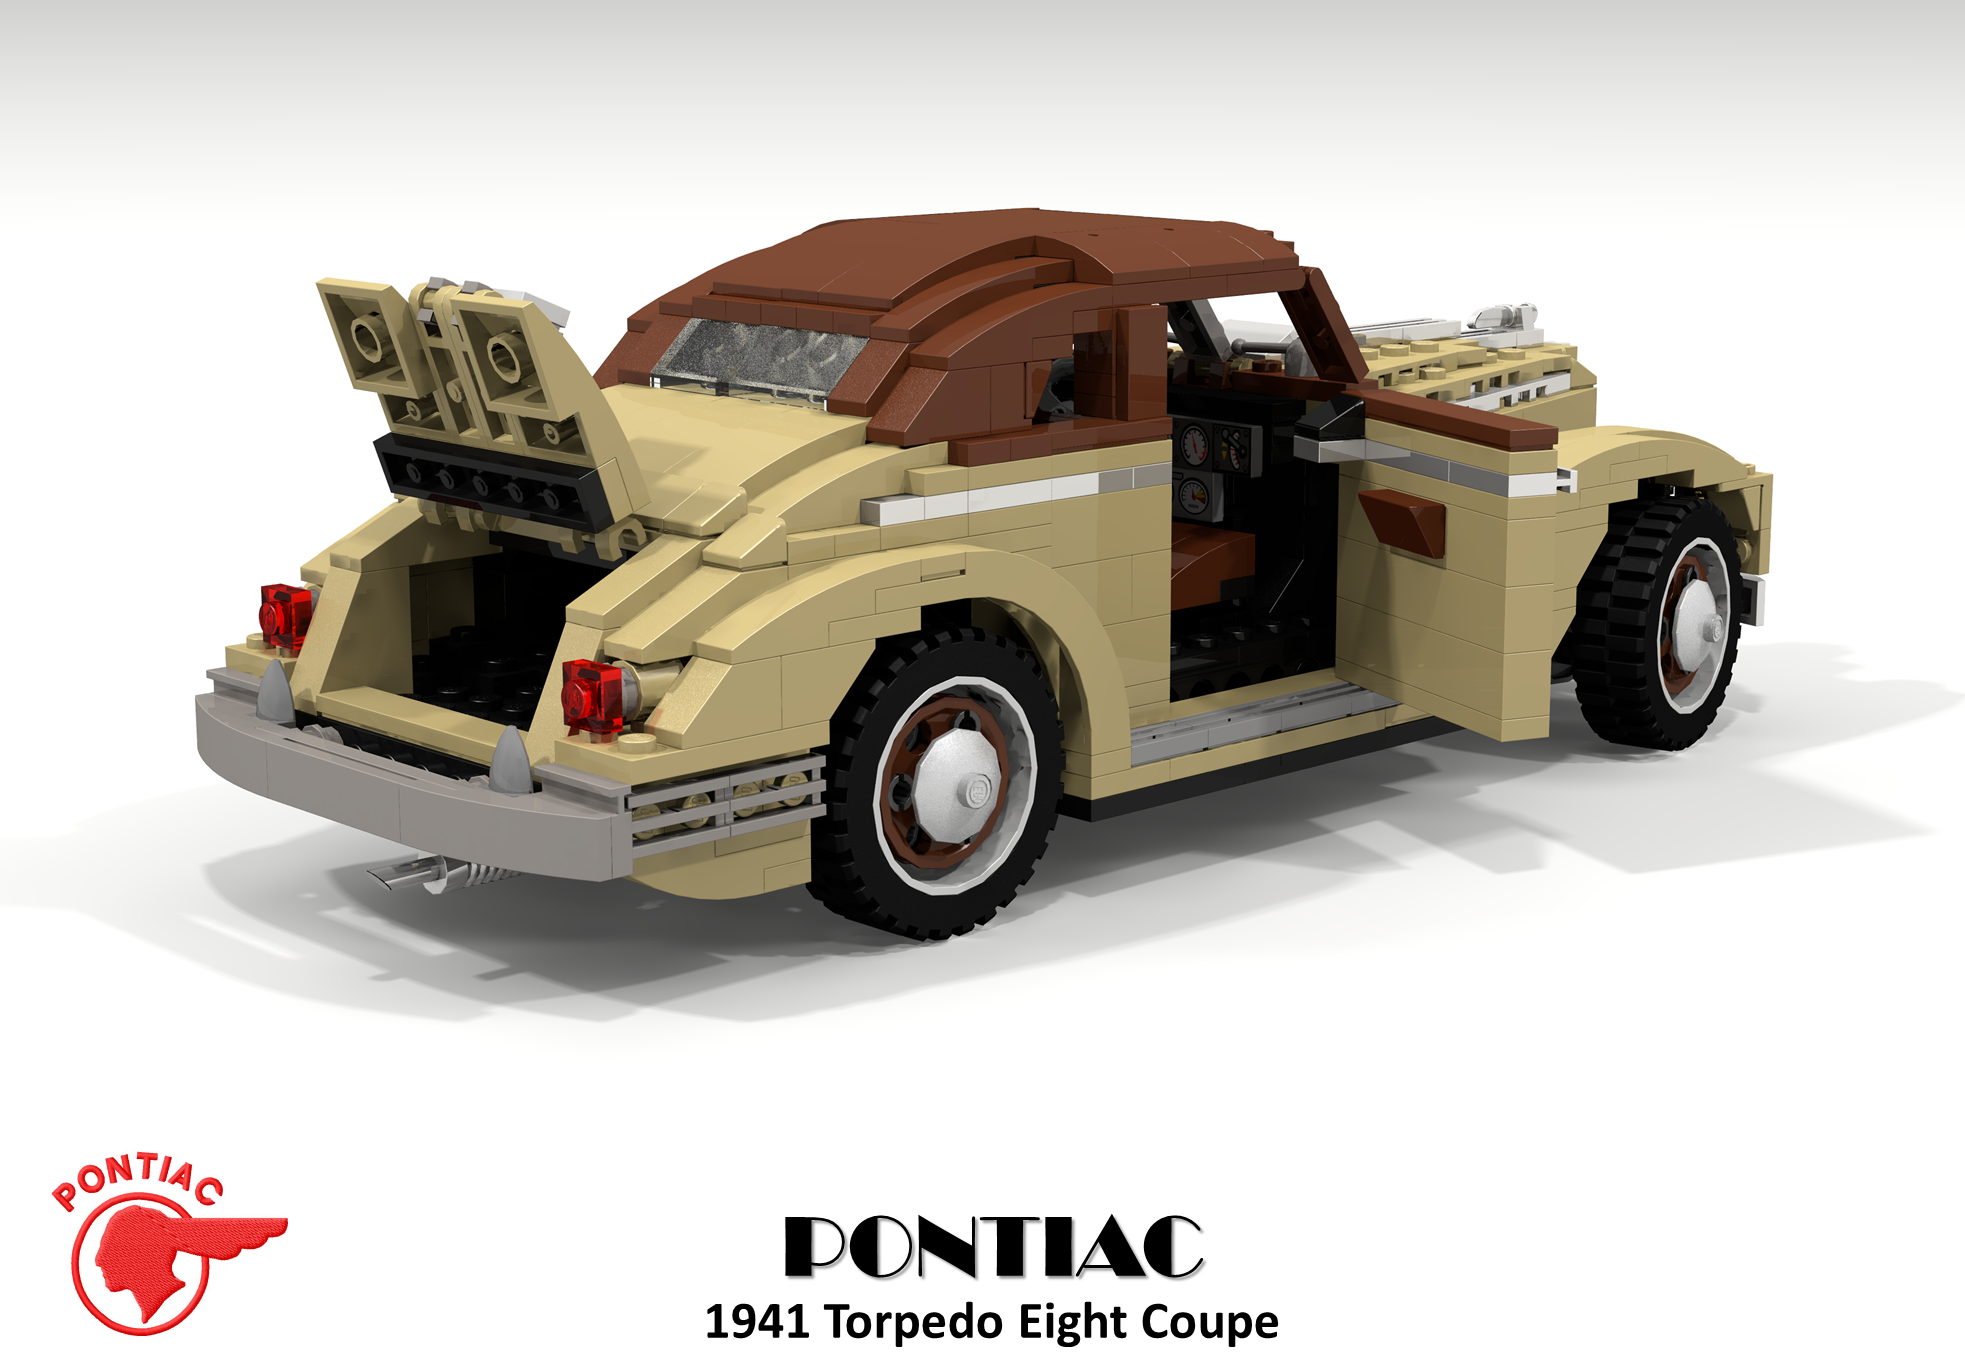 pontiac_1941_torpedo_eight_coupe_07.png